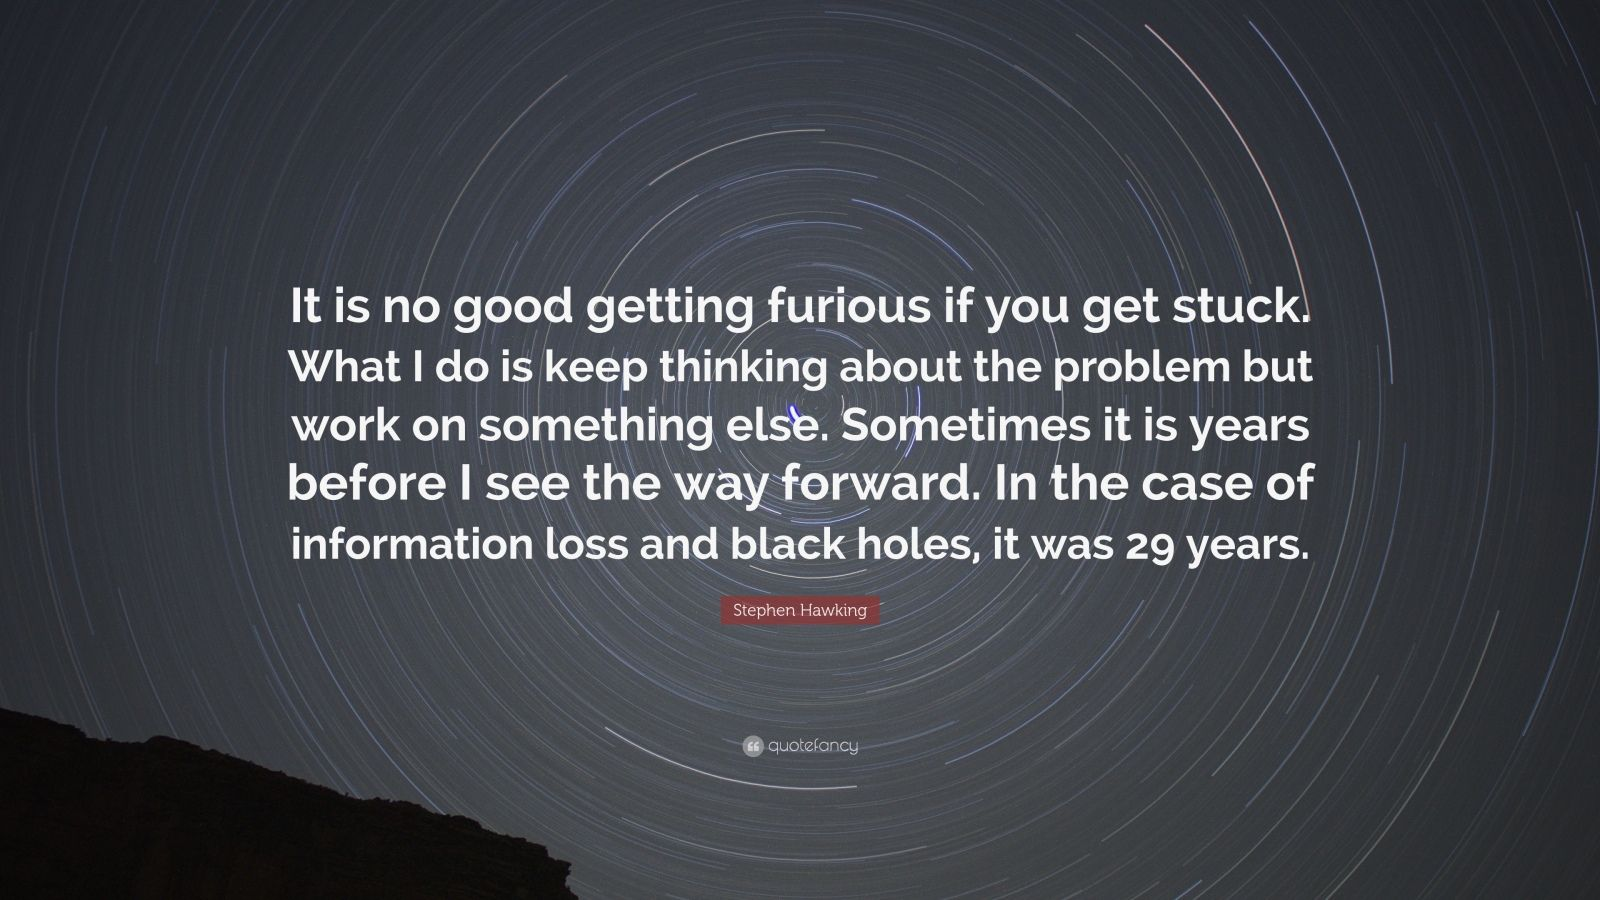 "Stephen Hawking Quote: ""It is no good getting furious if you get stuck. What I do is keep thinking about the problem but work on something else. Sometimes it is years before I see the way forward. In the case of information loss and black holes, it was 29 years."""